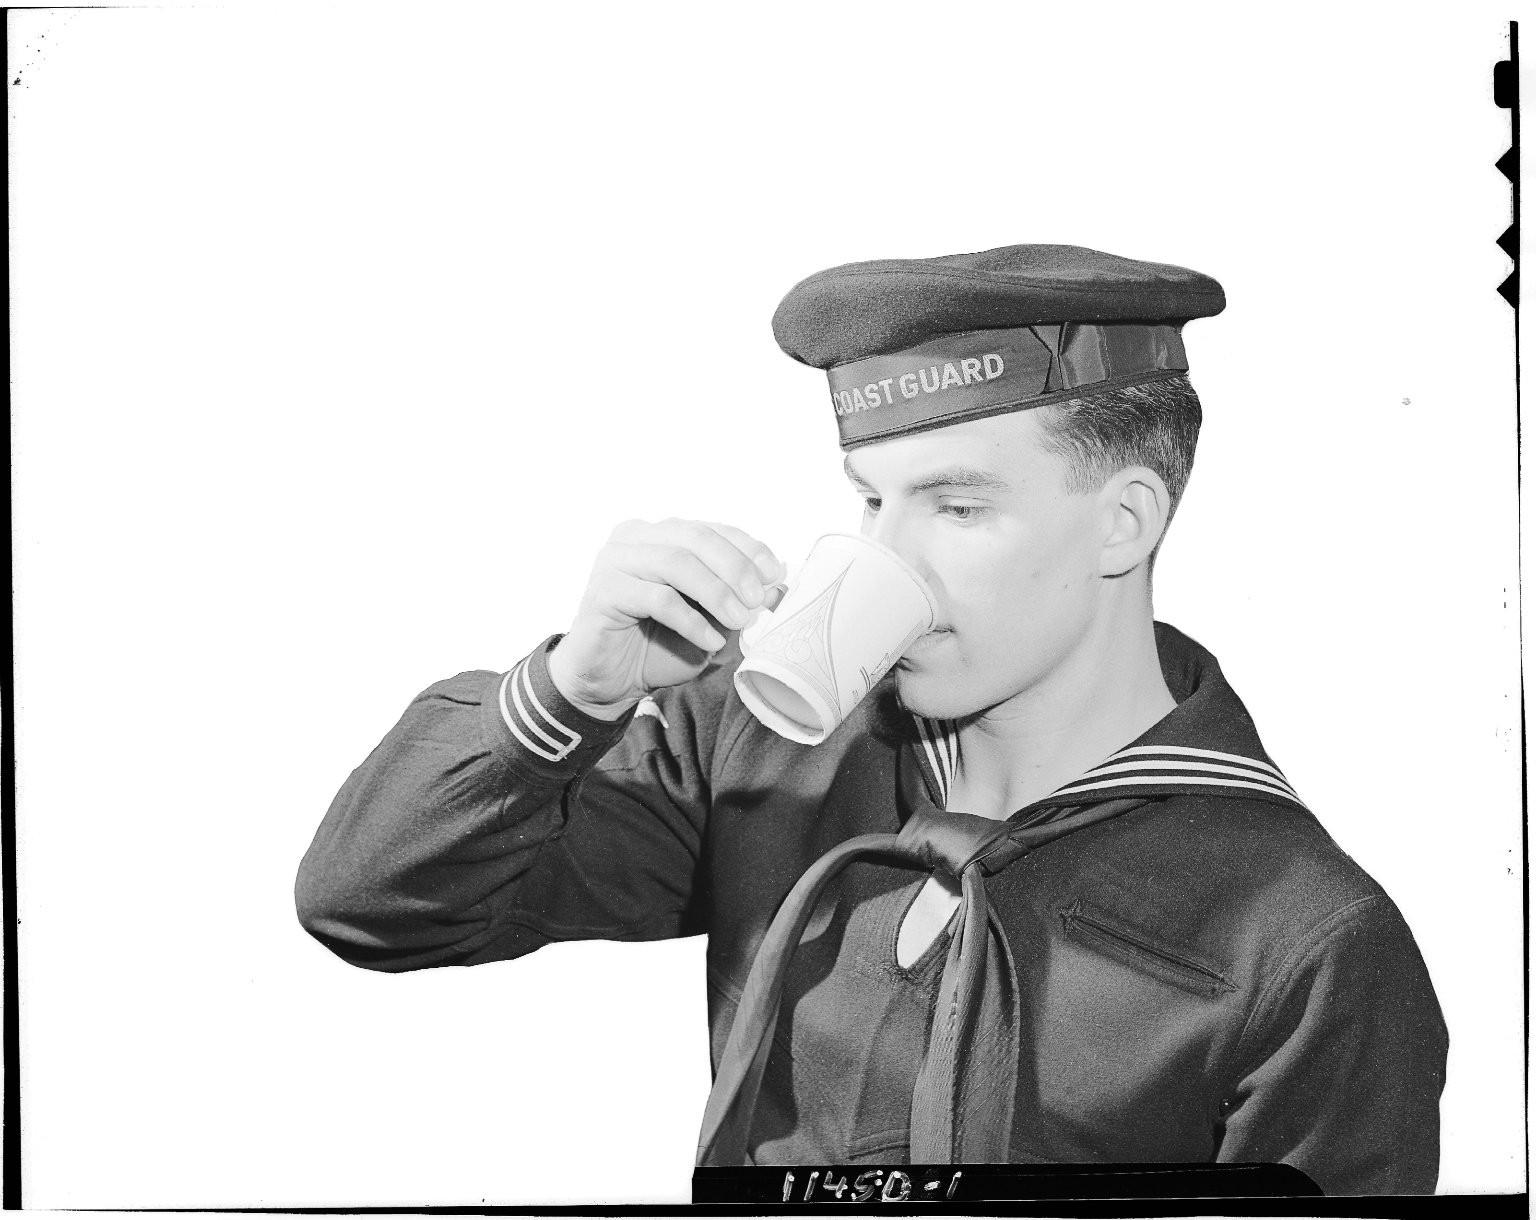 Sutherland Paper Company, U.S. Coast Guard enlisted man drinking from paper cup